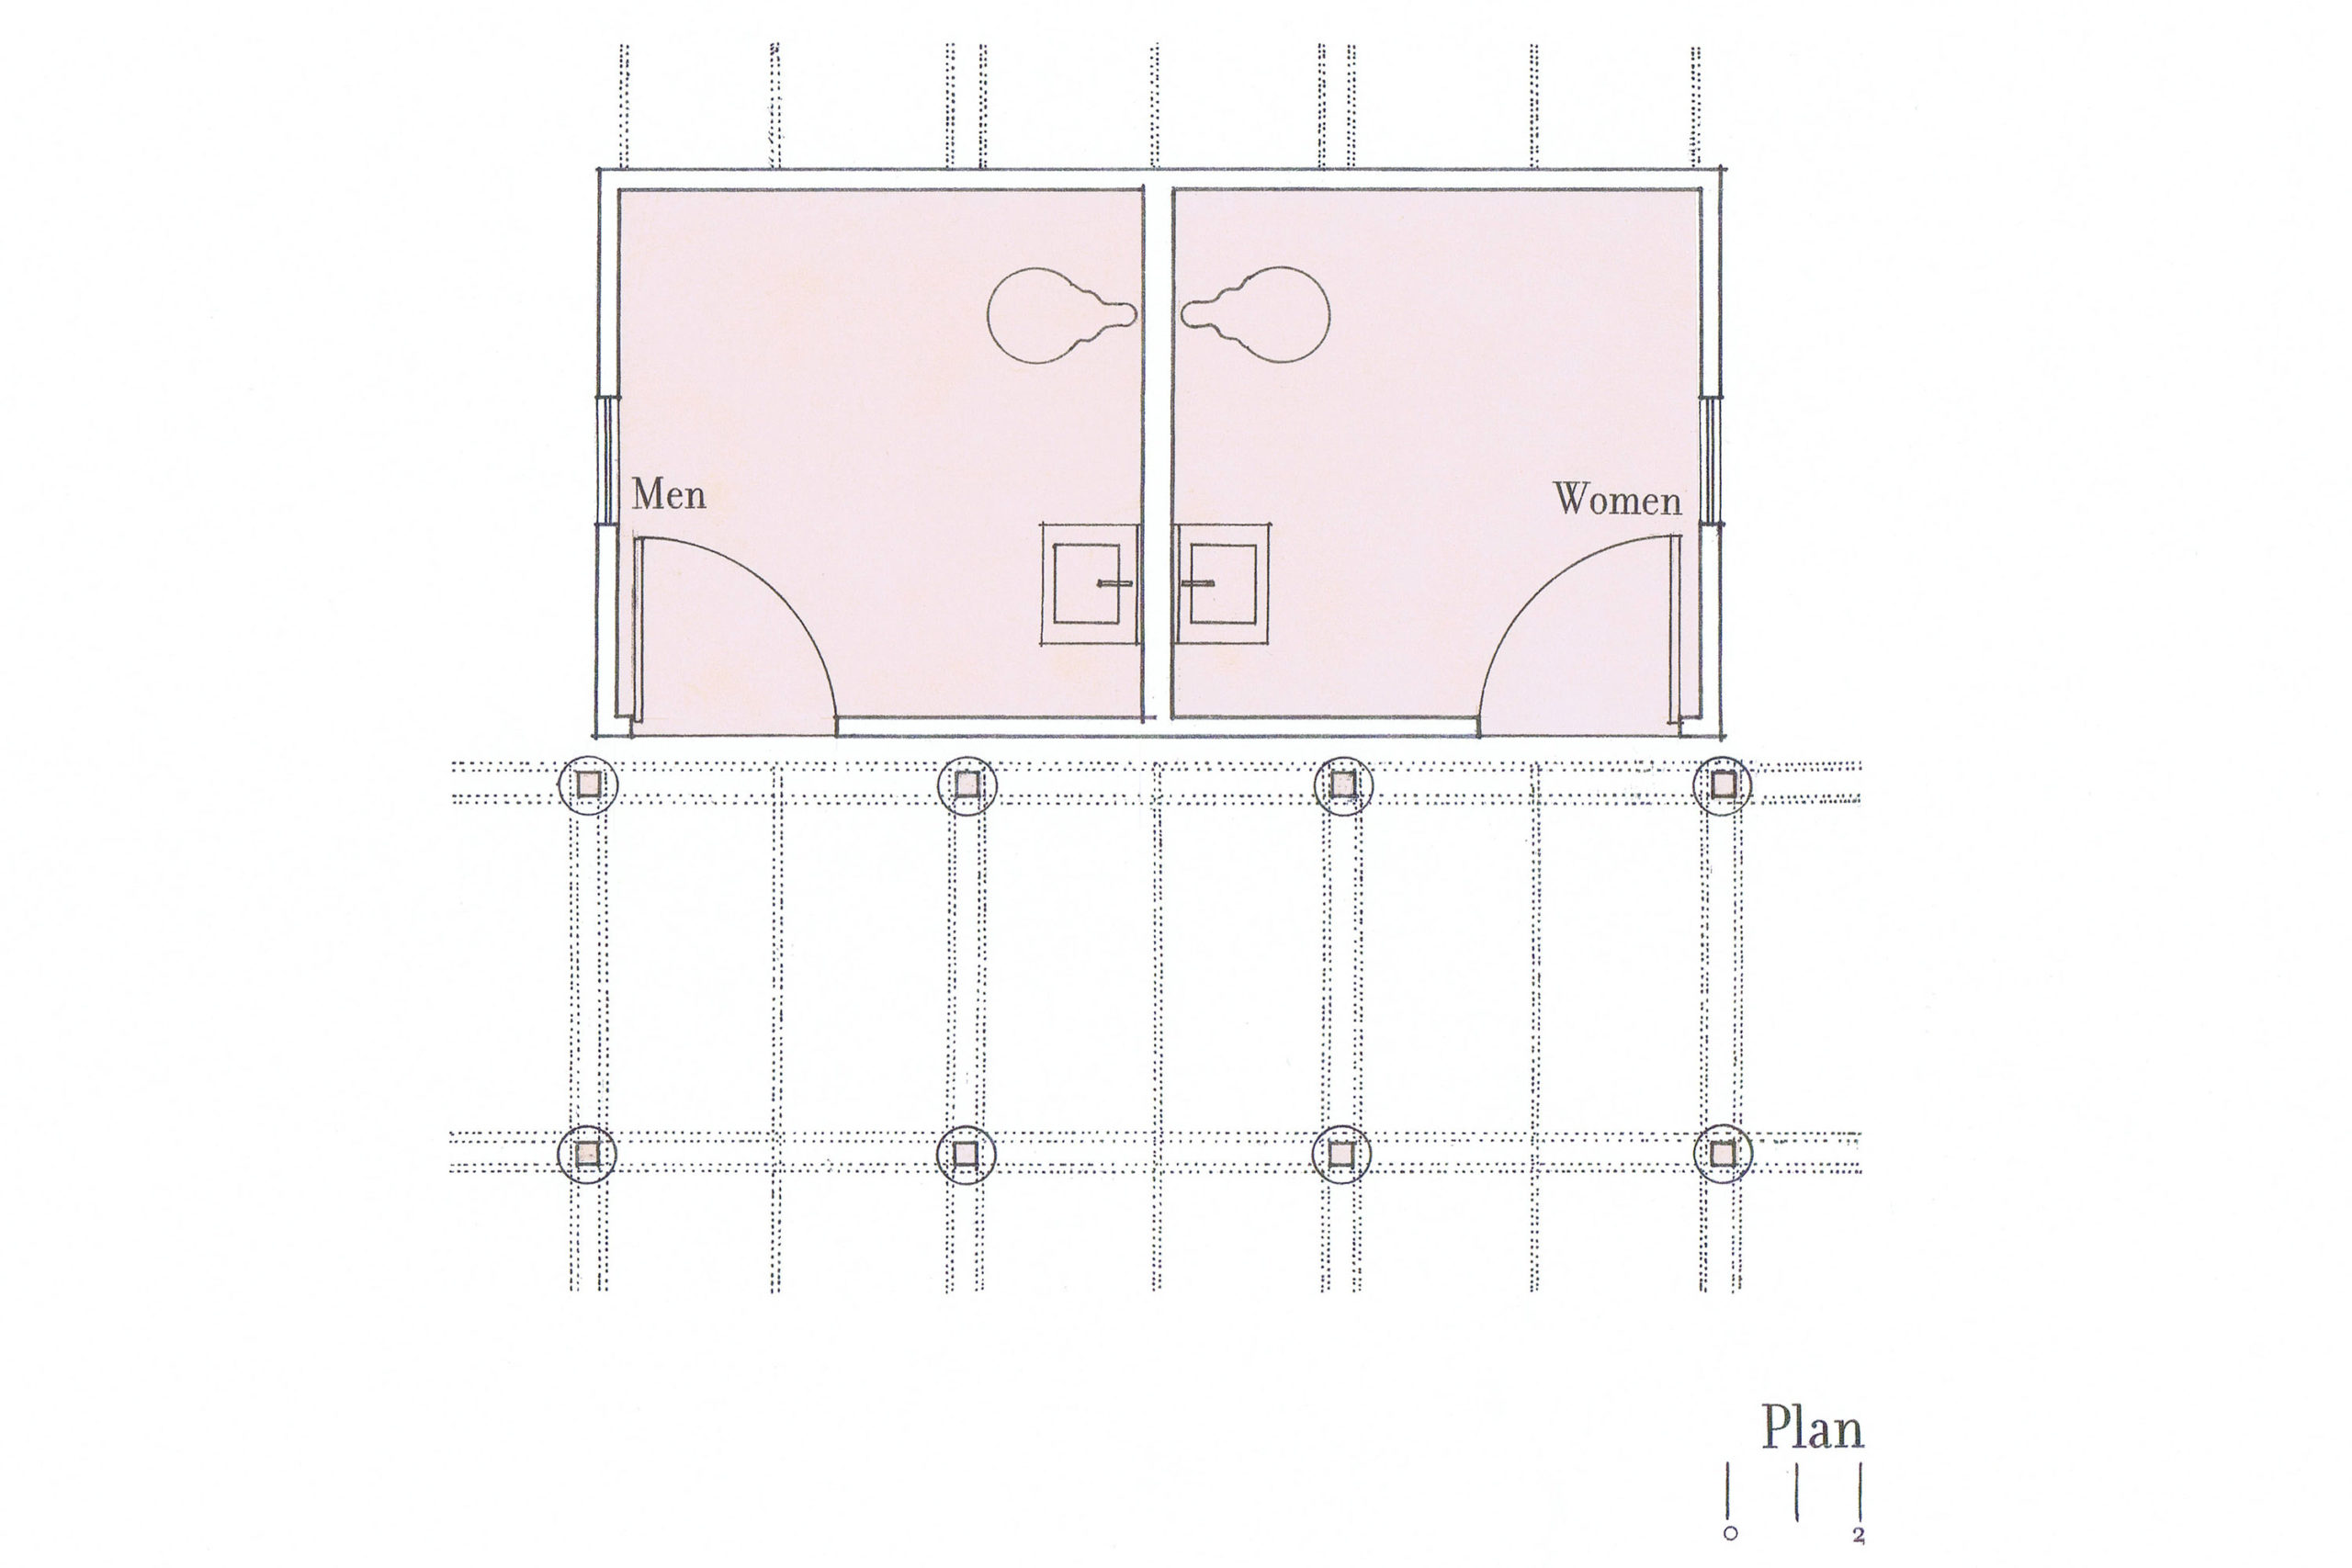 A floor plan of the Rogers Park Comfort Station showing two restrooms, each with a sink and toilet.